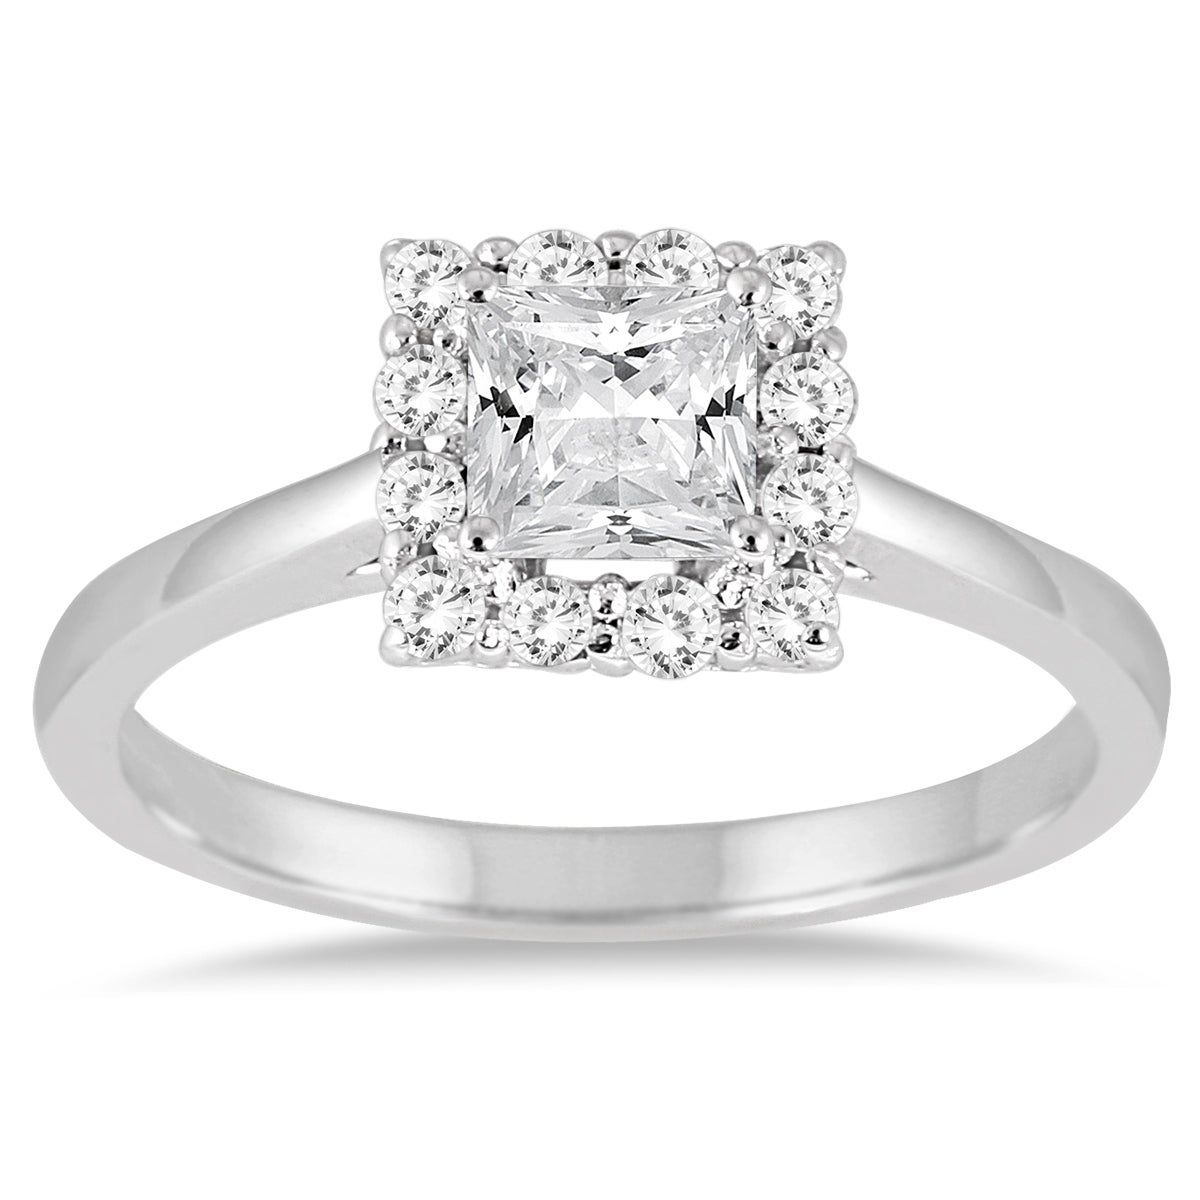 Shop 3 4 Carat TW Princess Cut Diamond Halo Engagement Ring in 14K White  Gold - Free Shipping Today - Overstock - 20593713 205f44764703